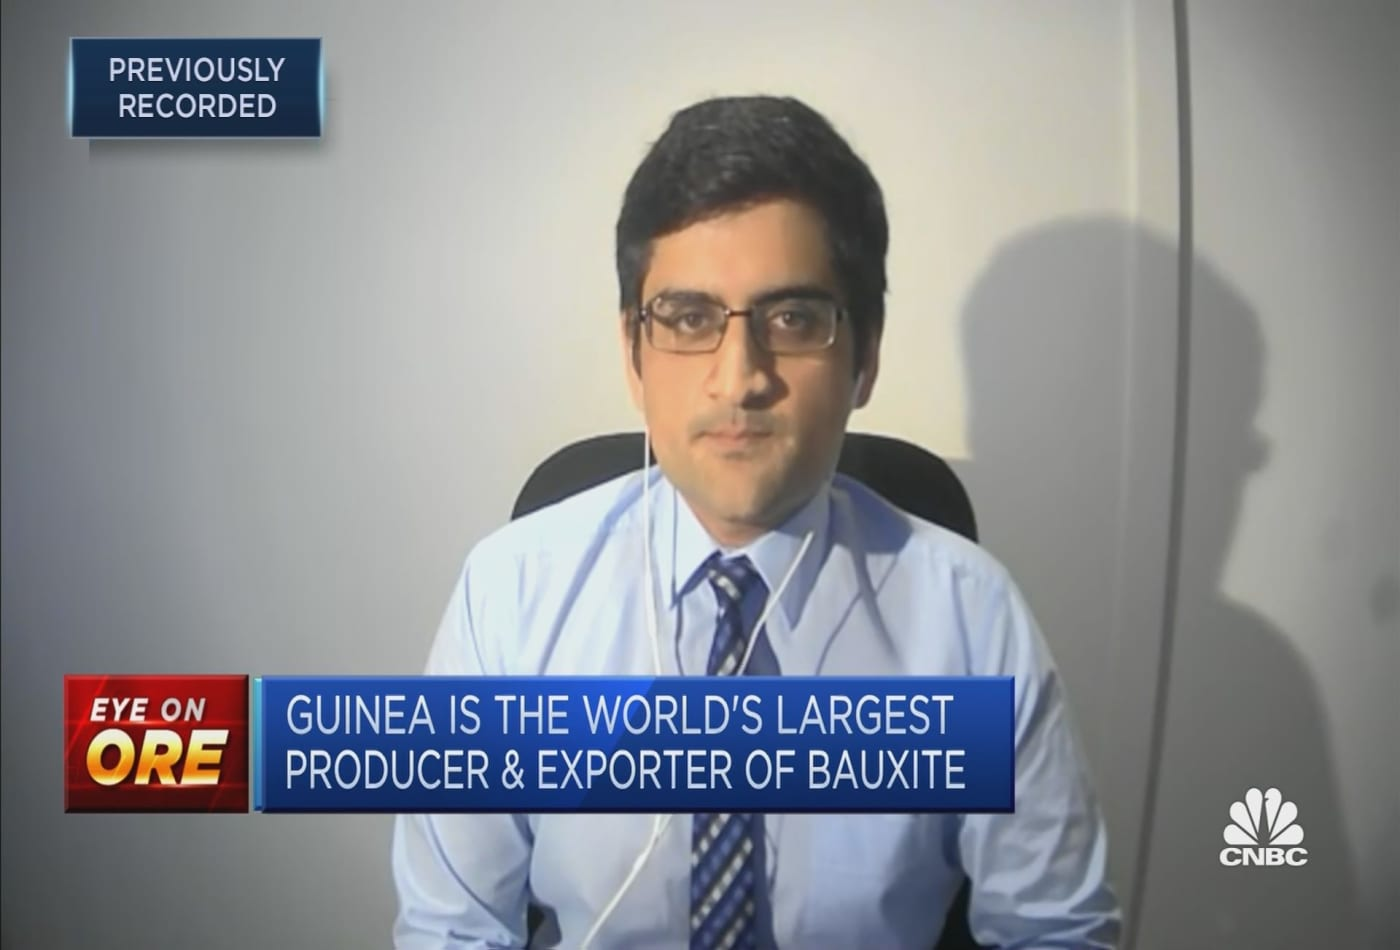 Mining disruptions may be seen if Guinea coup worsens: Commodities expert